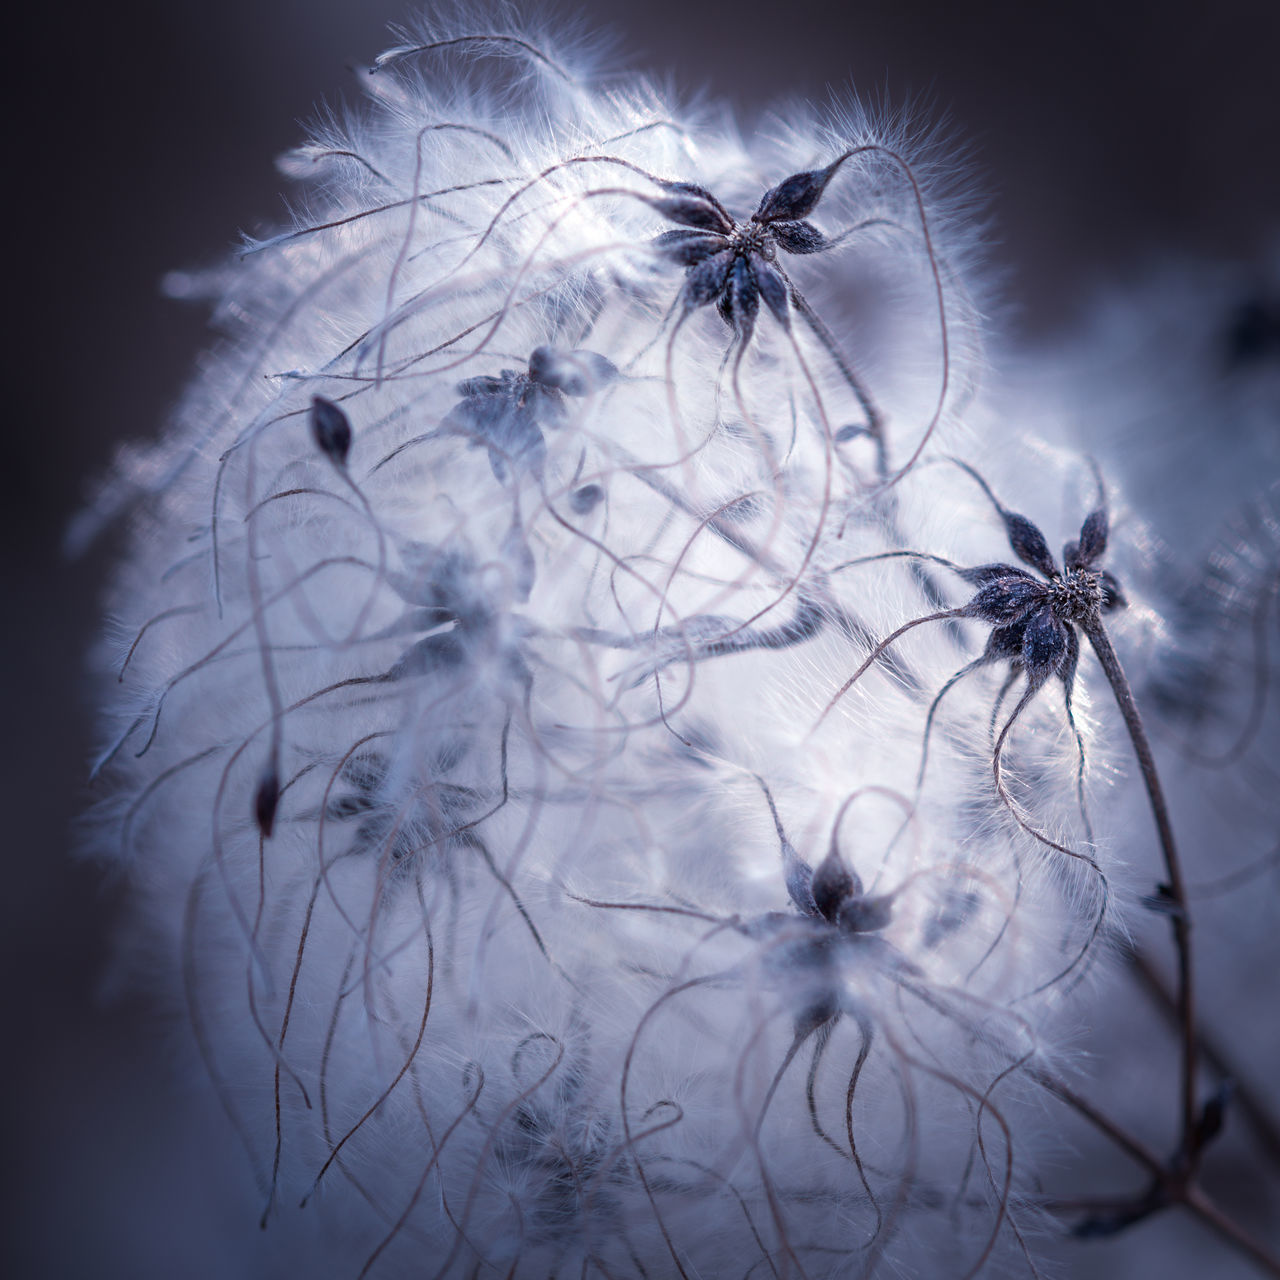 Network Abstract Art Artful Bloom Blossom Blowball Blue Closeup Cotton Cotton Ball Creative Different Dreamy Flower Fluffy Hairy  Linked Macro Merged Nature Network Plant Smooth Violet Web